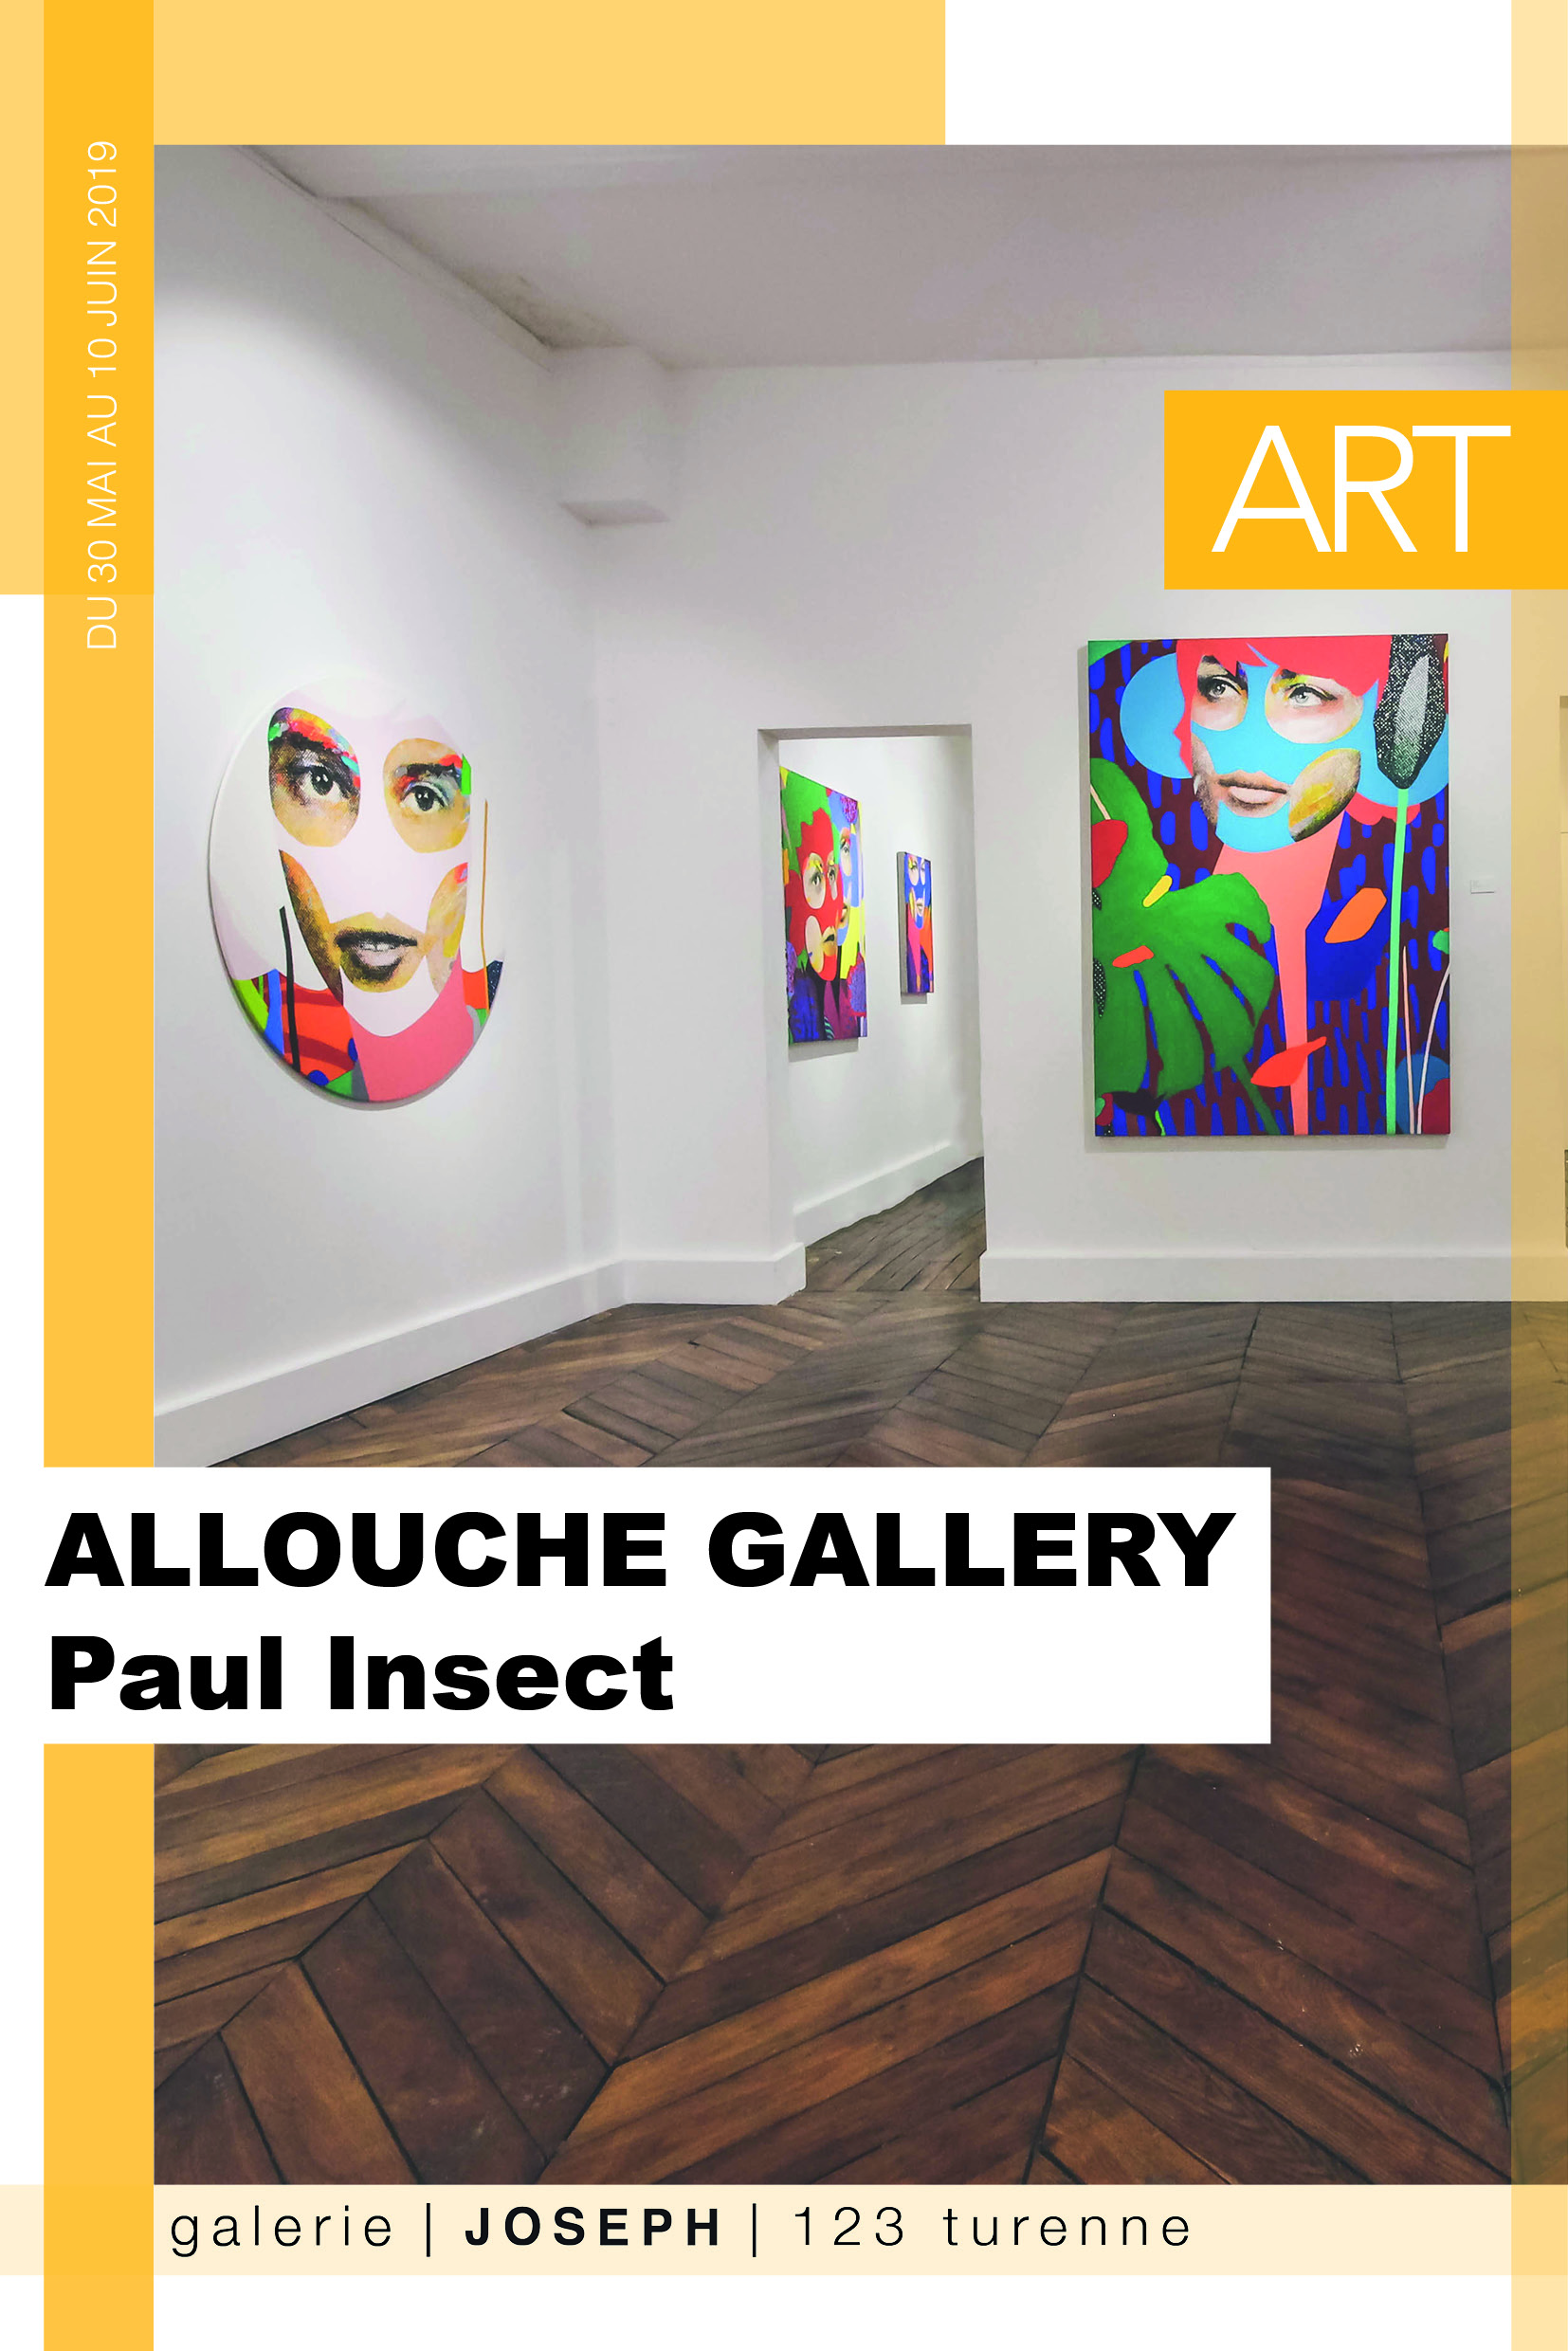 Allouche Gallery Paul Insect